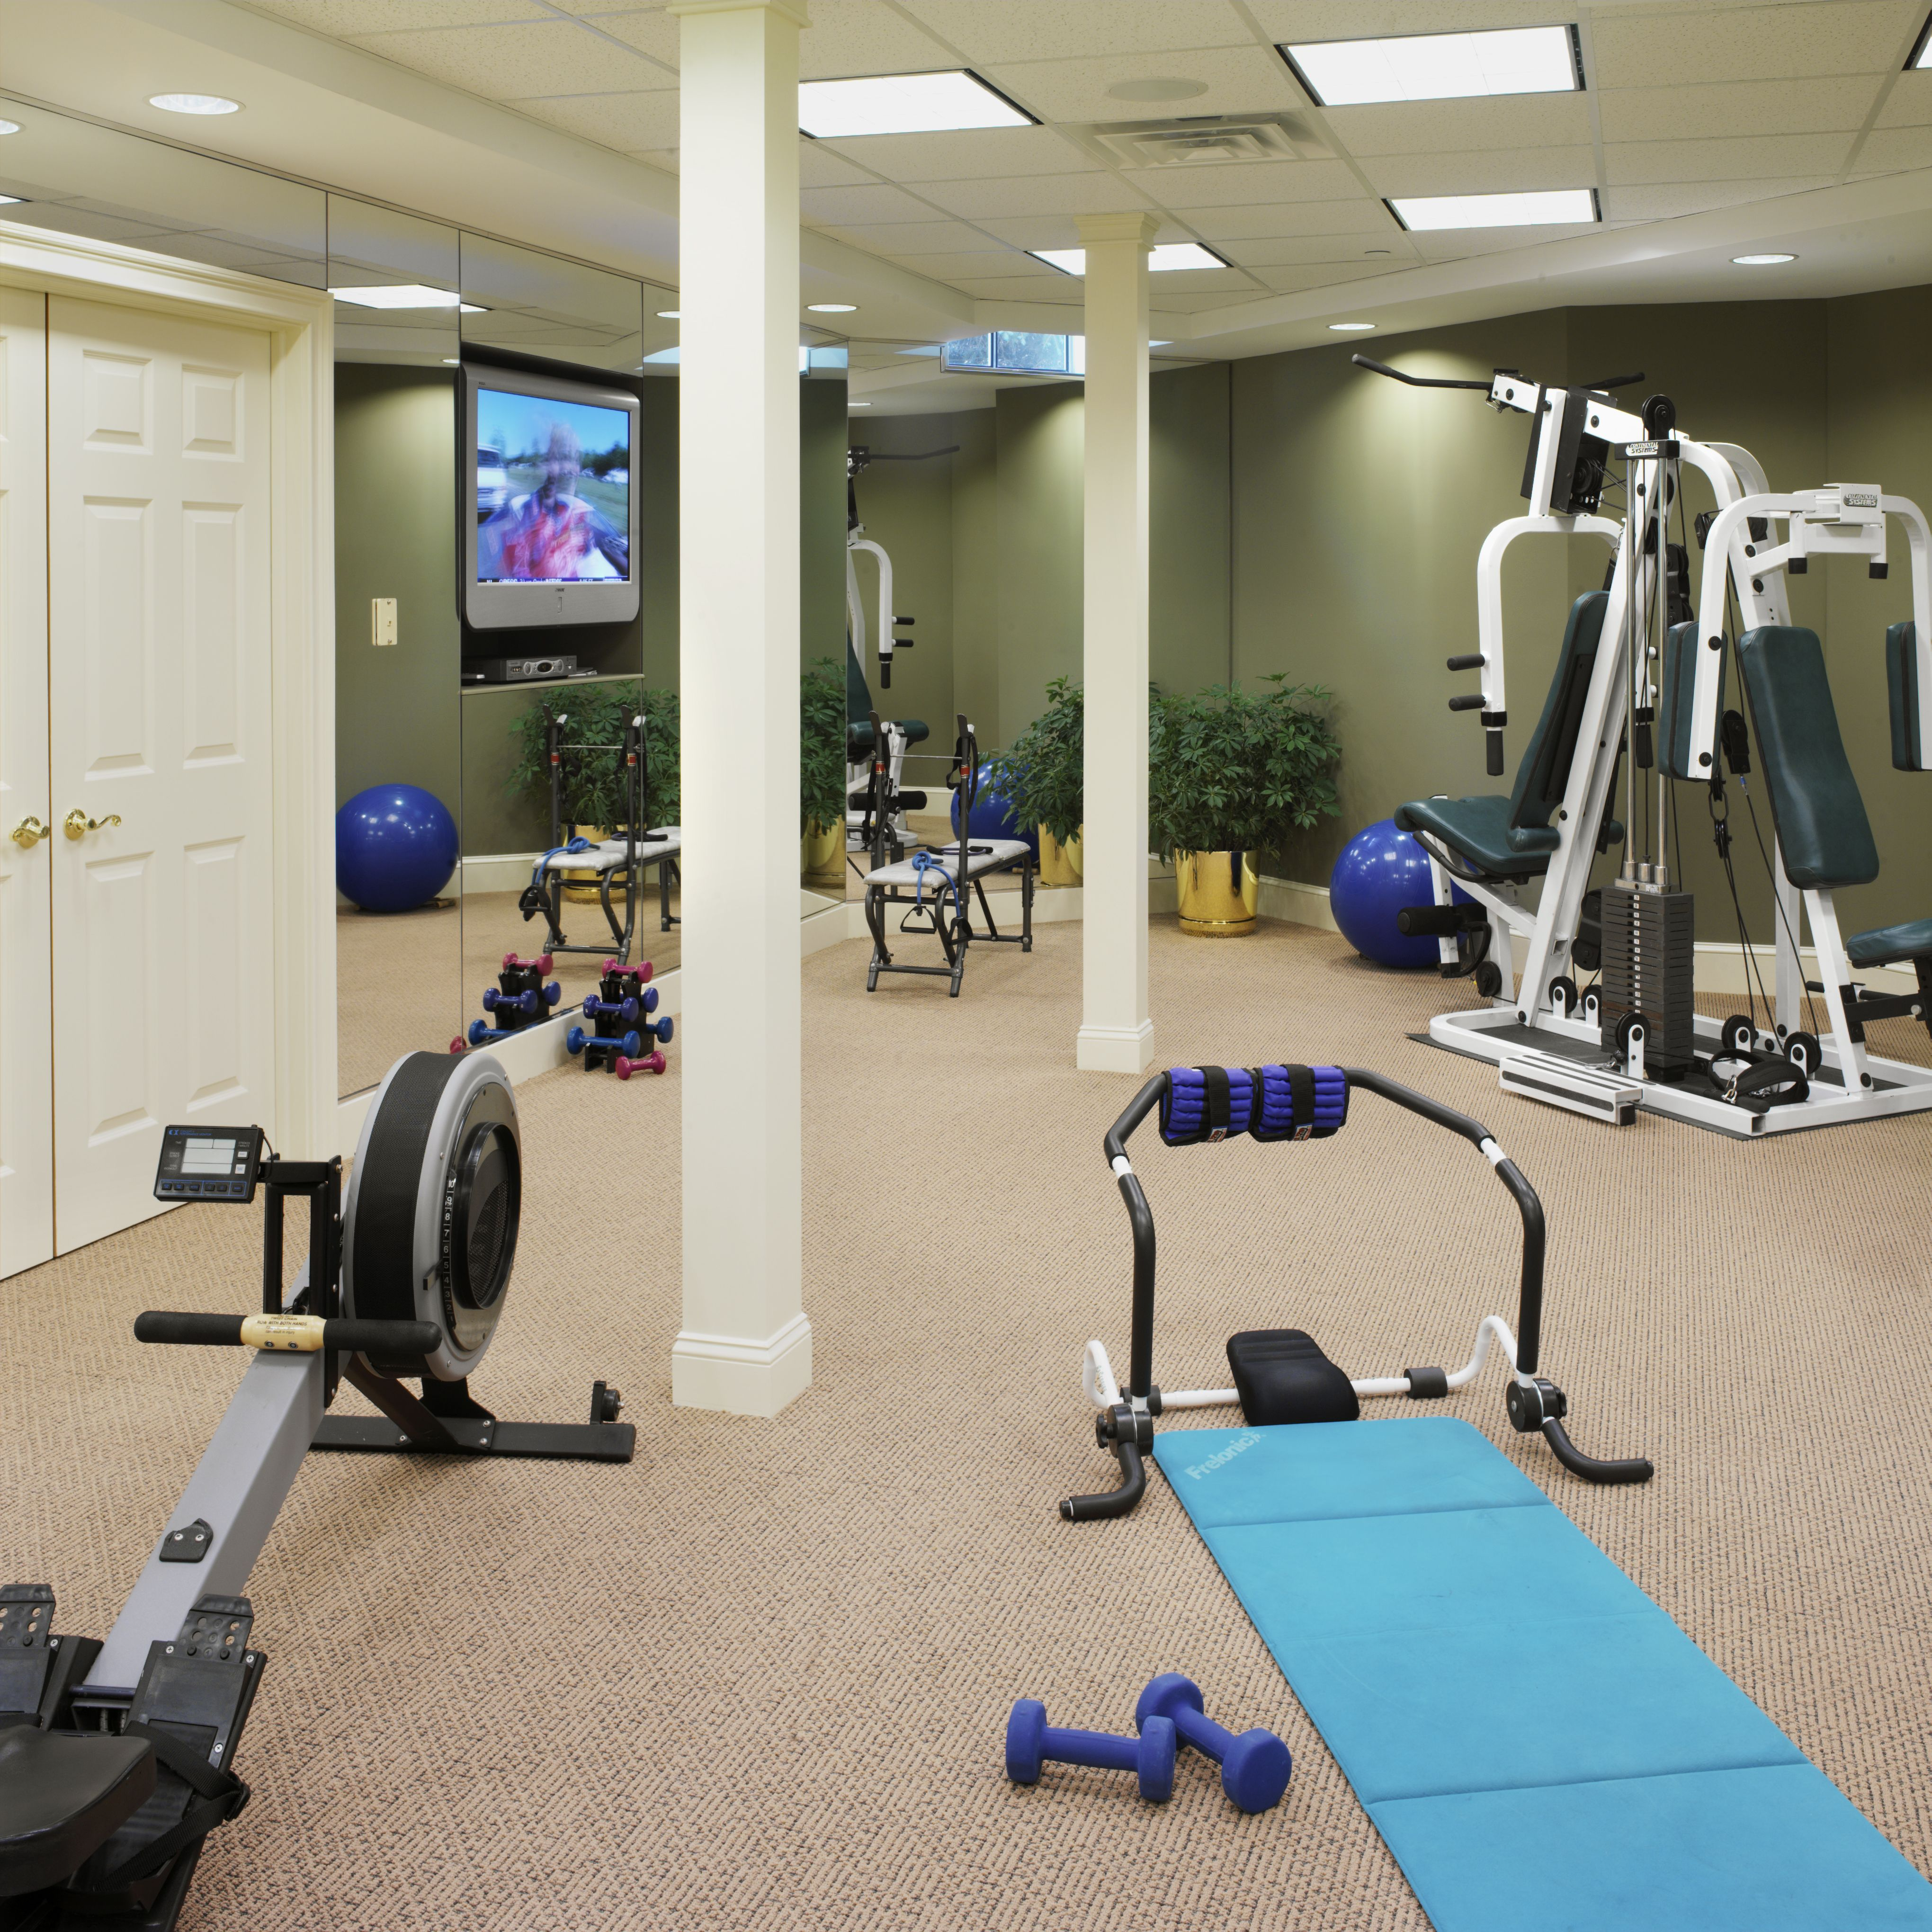 Basement l Awesome home gym / fitness room idea- for the basement l Home  and Garden Design Ideas l